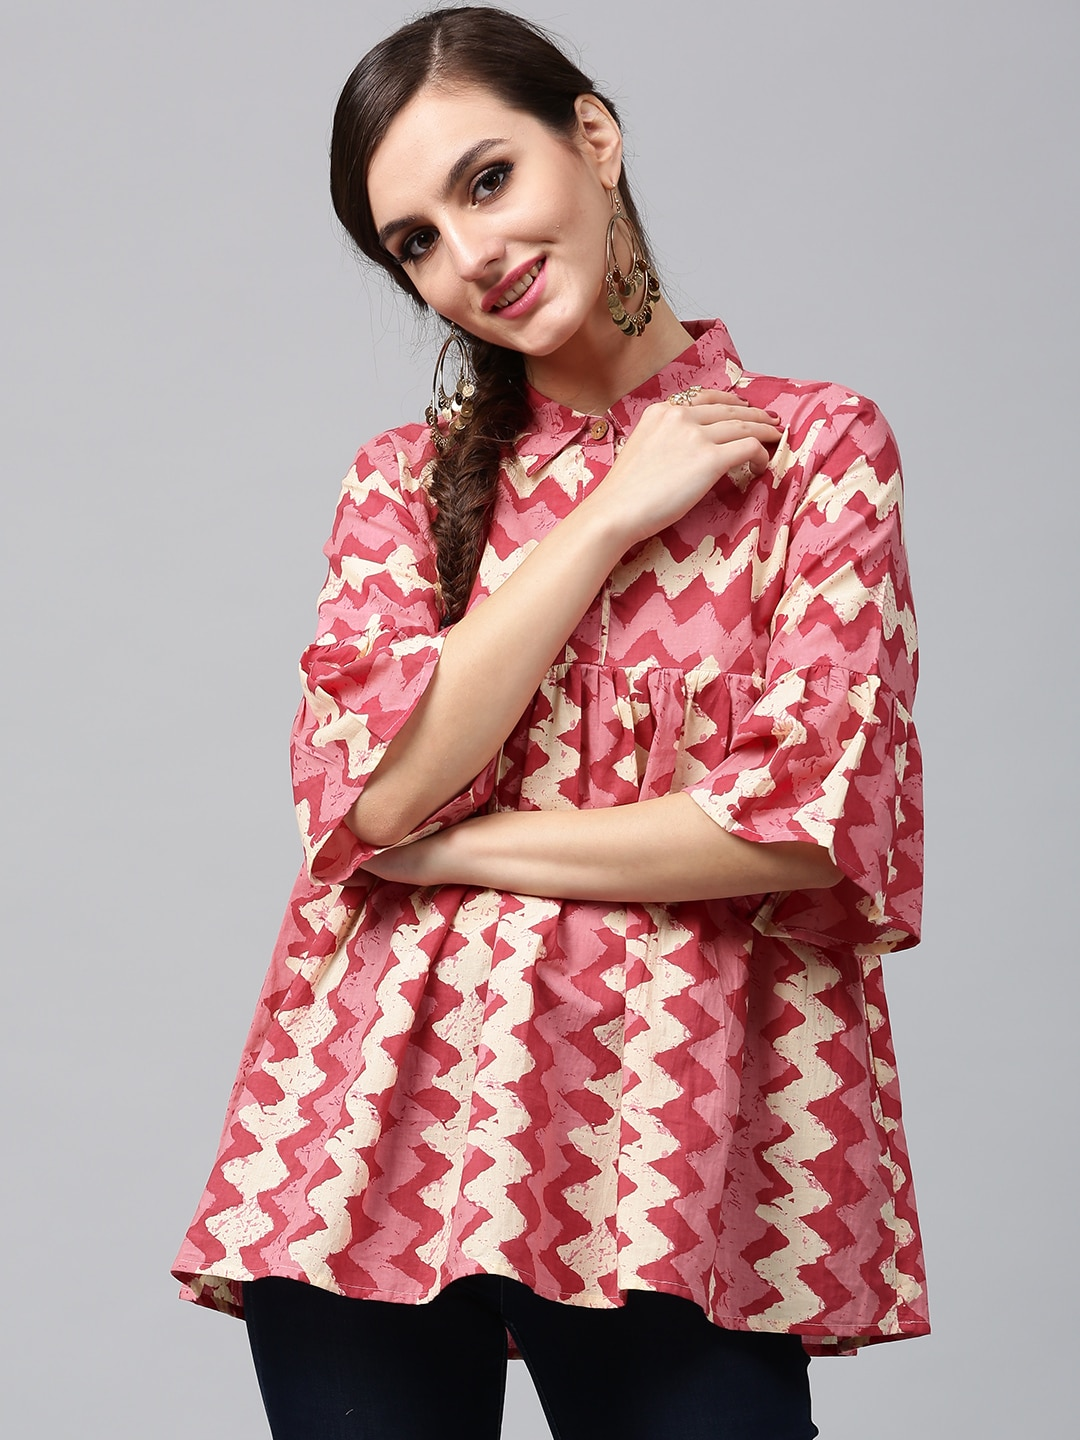 To acquire Stylish ladies tunics pictures trends